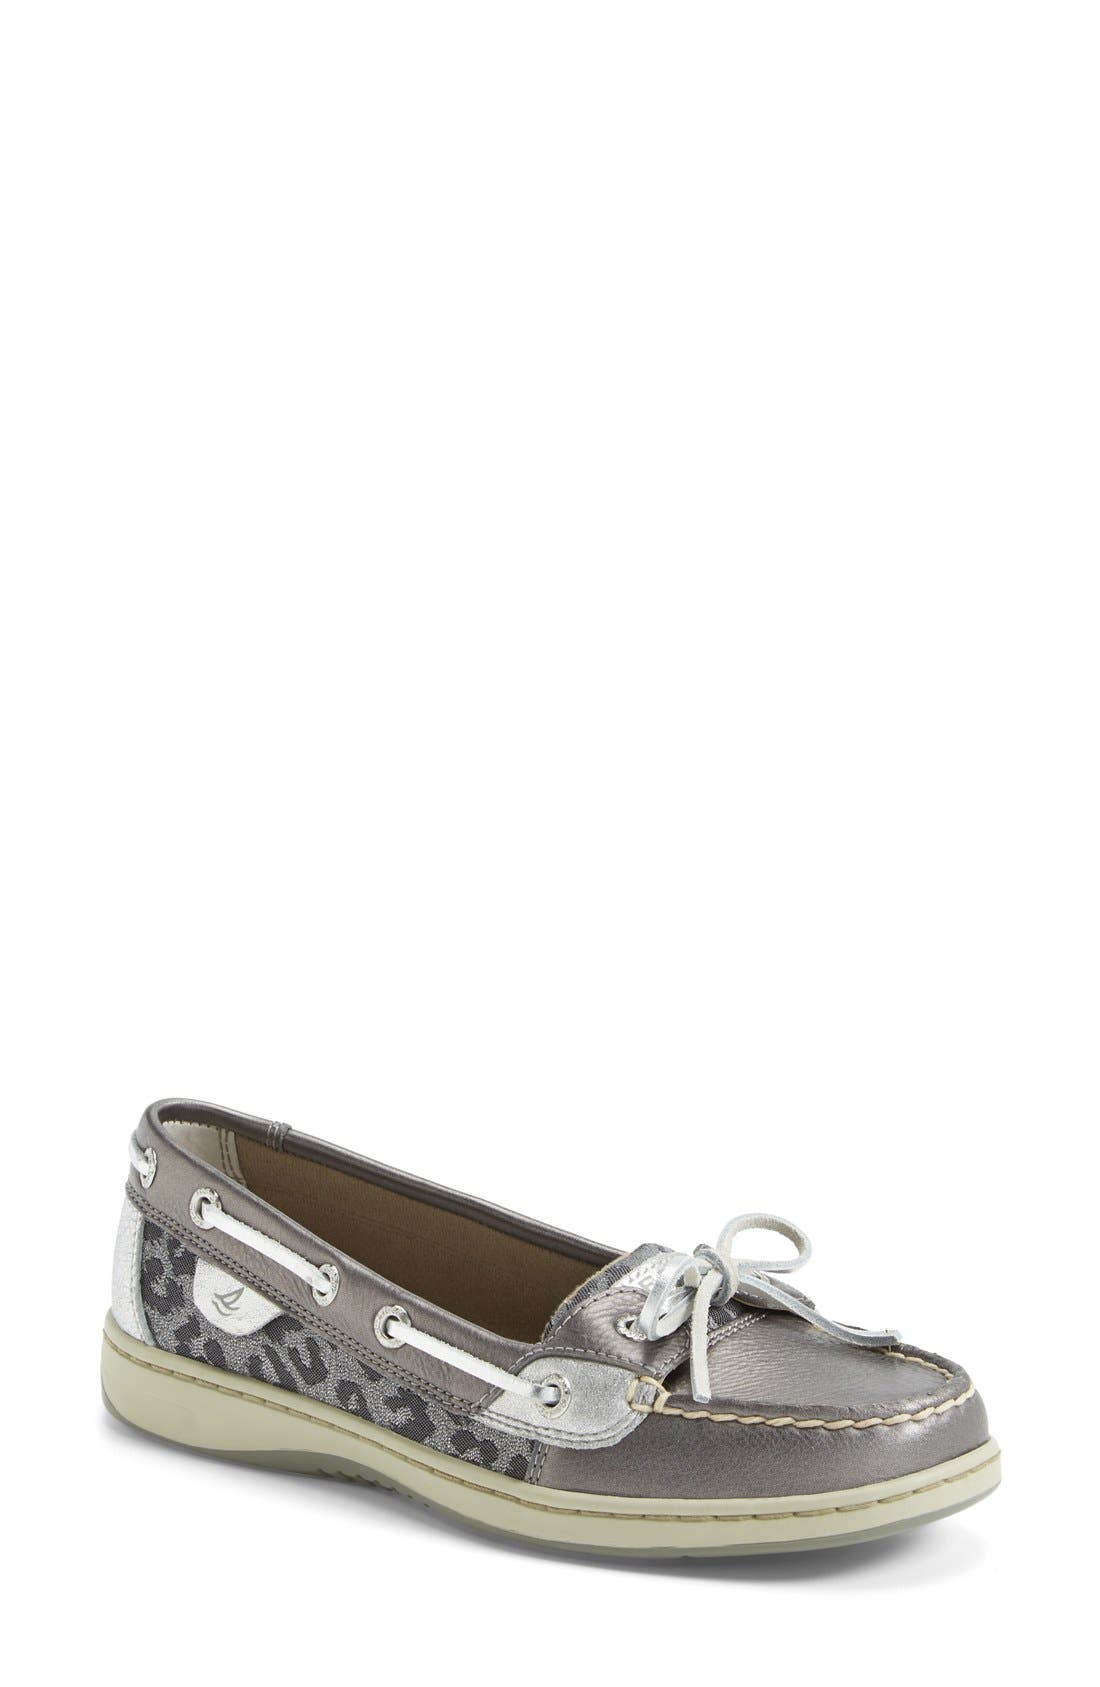 Alternate Image 1 Selected - Sperry 'Angelfish' Boat Shoe